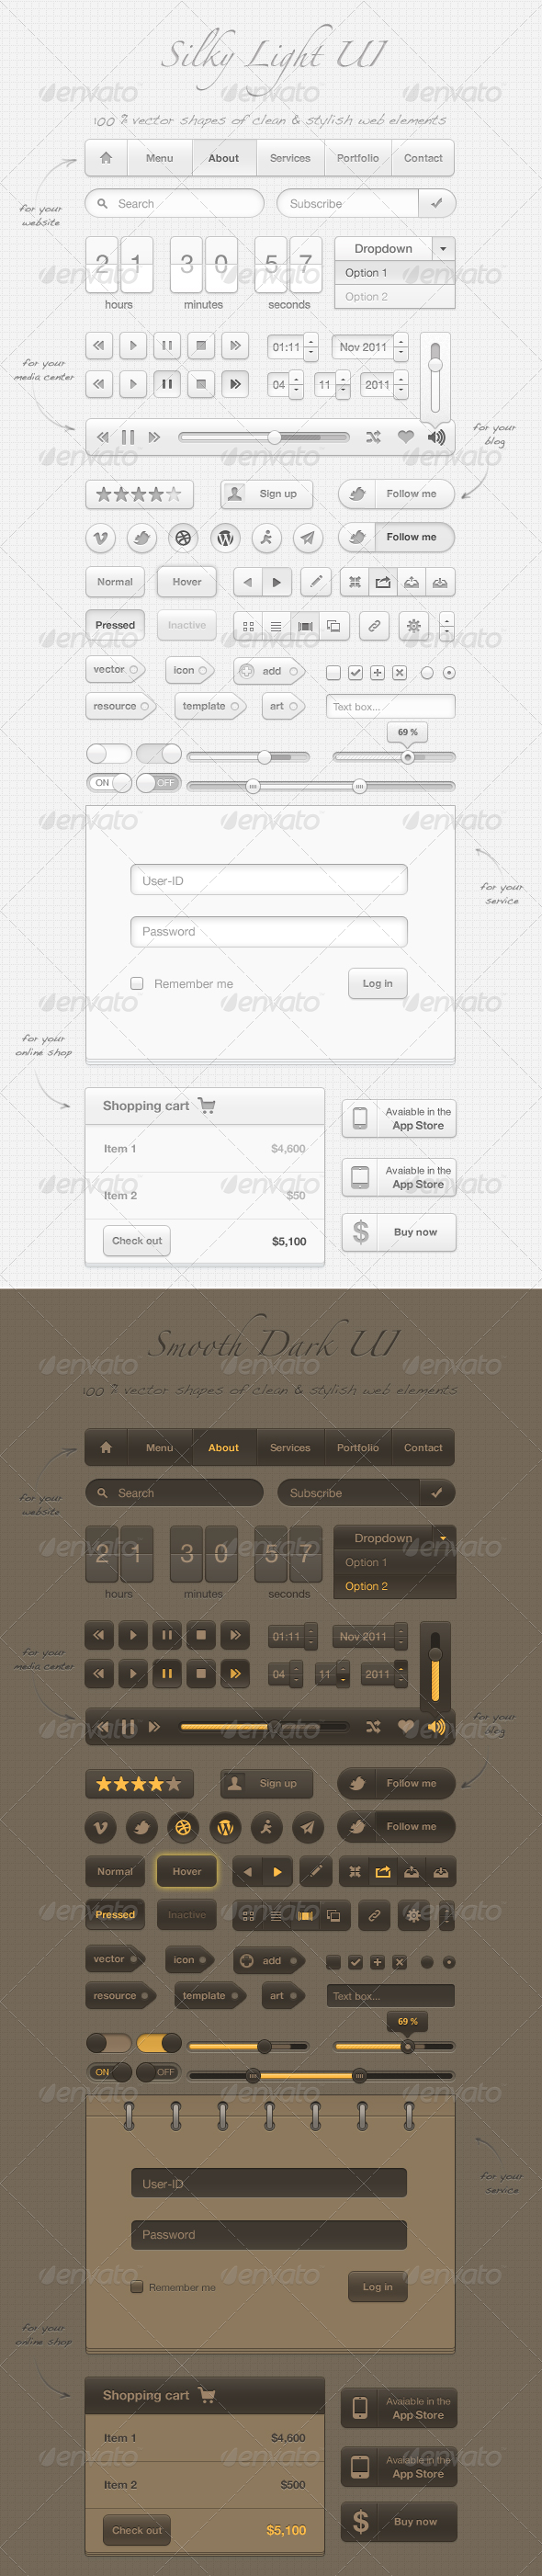 GraphicRiver Silky User Interface 100% vector arts 861173